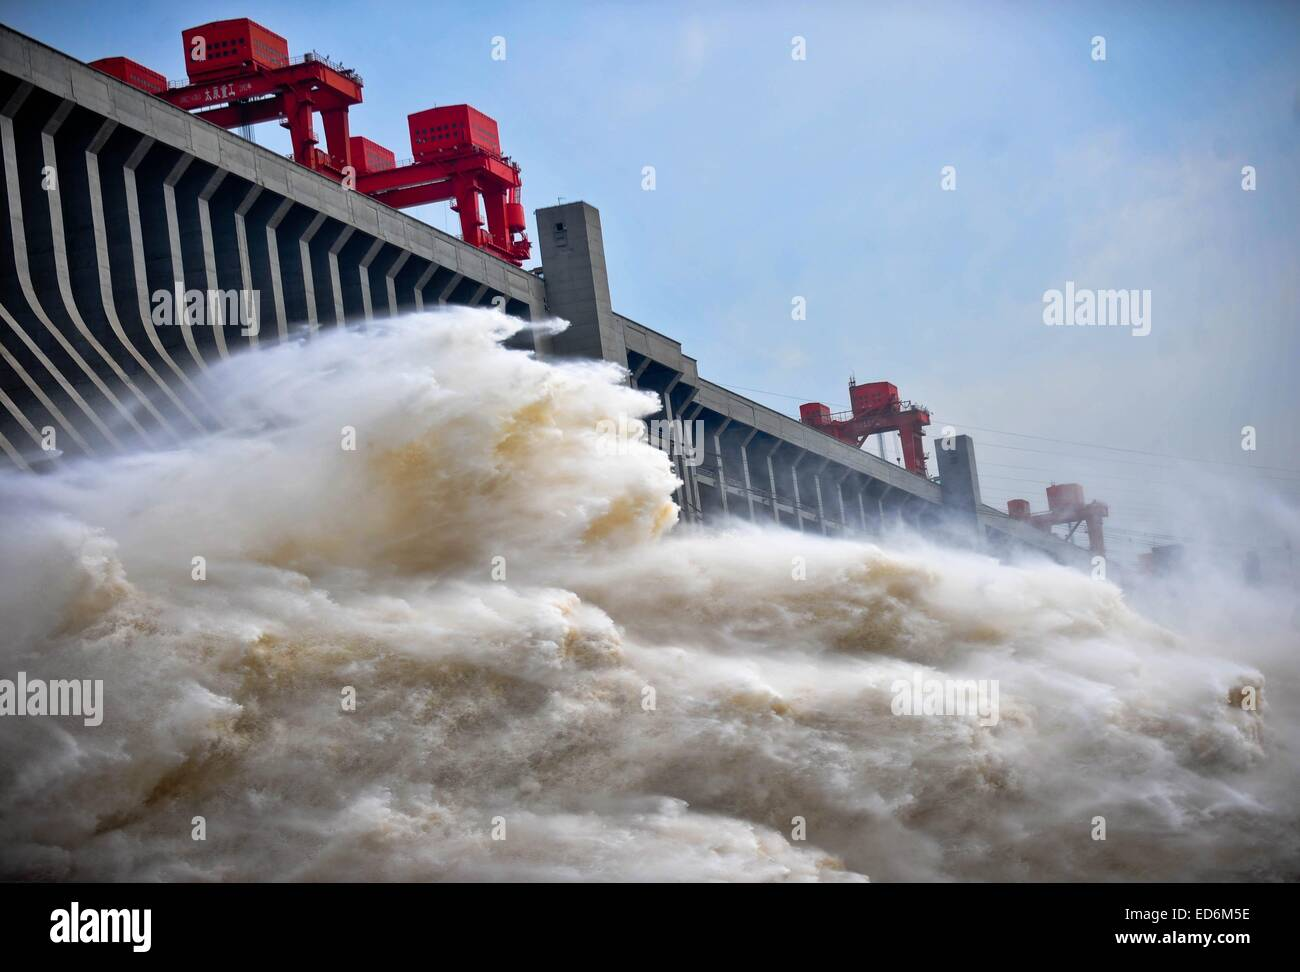 (141230) -- BEIJING, Dec. 30, 2014 (Xinhua) -- File photo taken on July 24, 2012 shows flood water discharging from - Stock Image